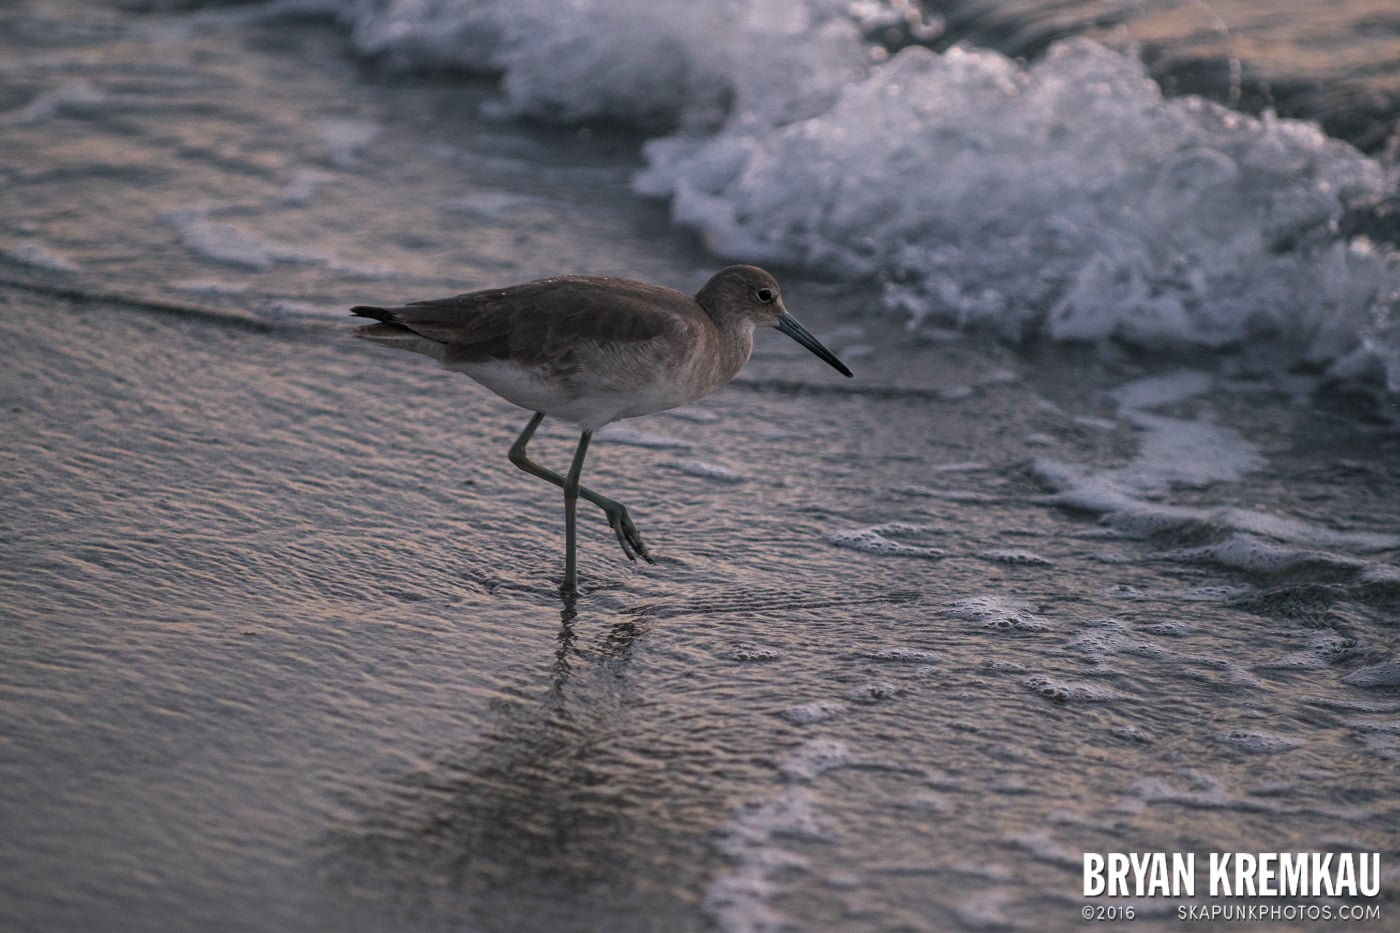 Sunsets, Astrophotography & Birds @ Venice, Florida - 10.25.14 - 11.5.14 (114)